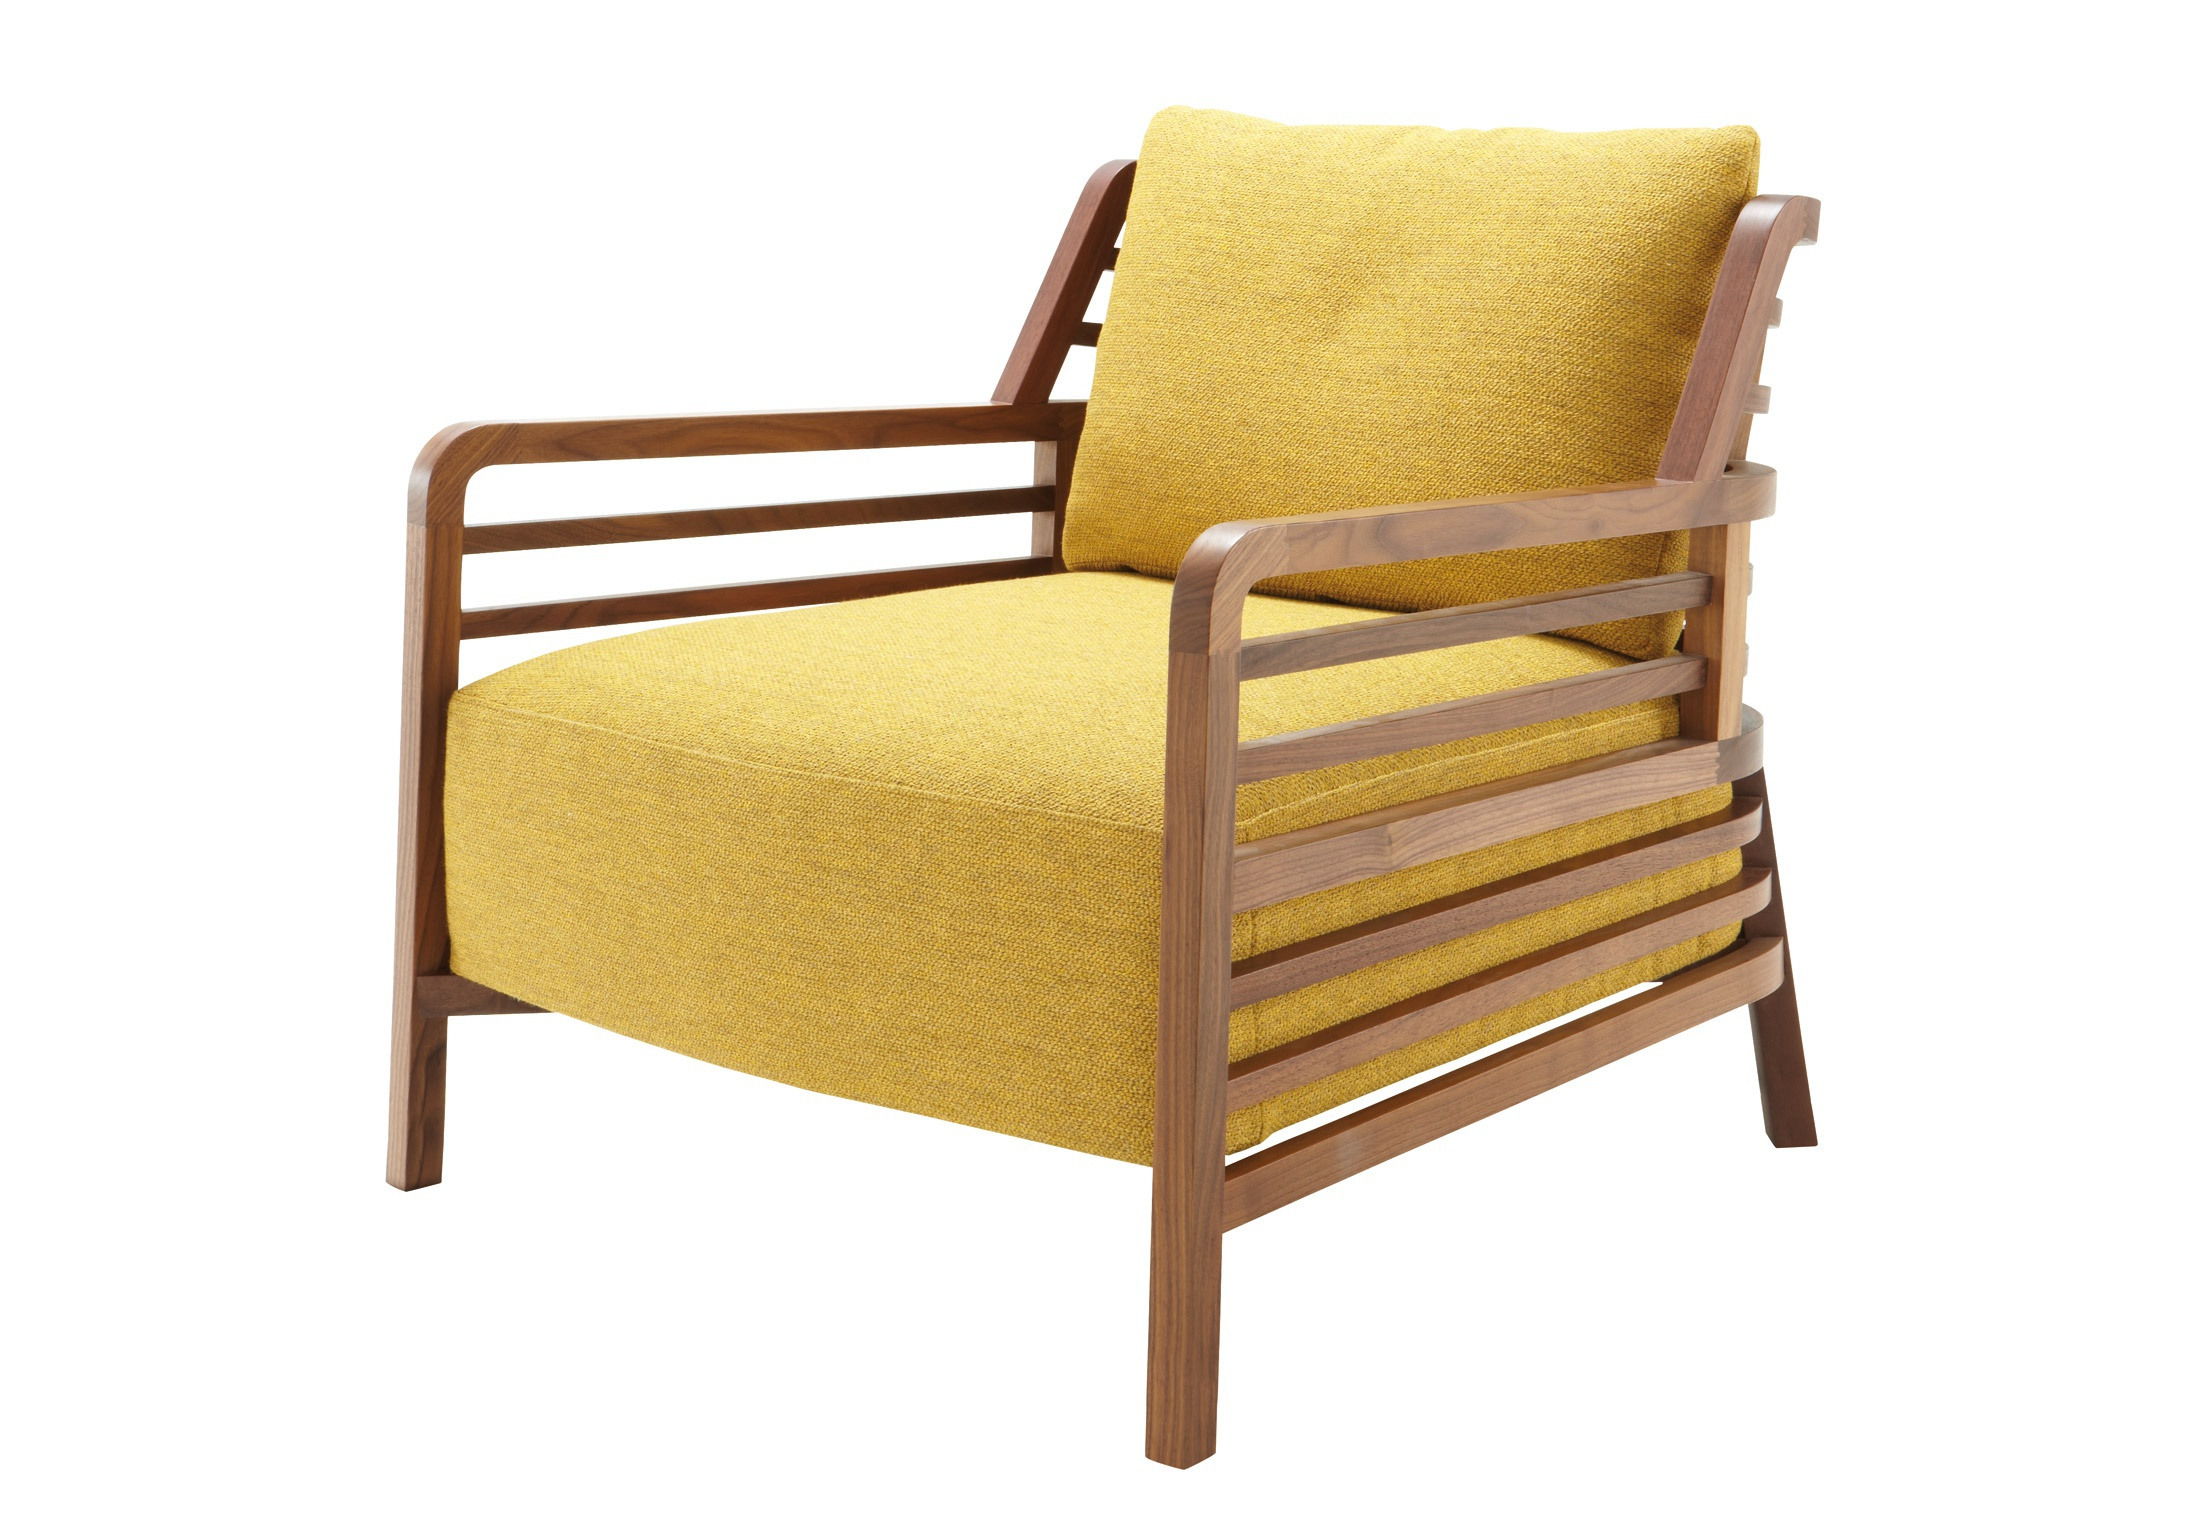 Chair Made Of Natural Wood In Flax Fabric Ligne Roset